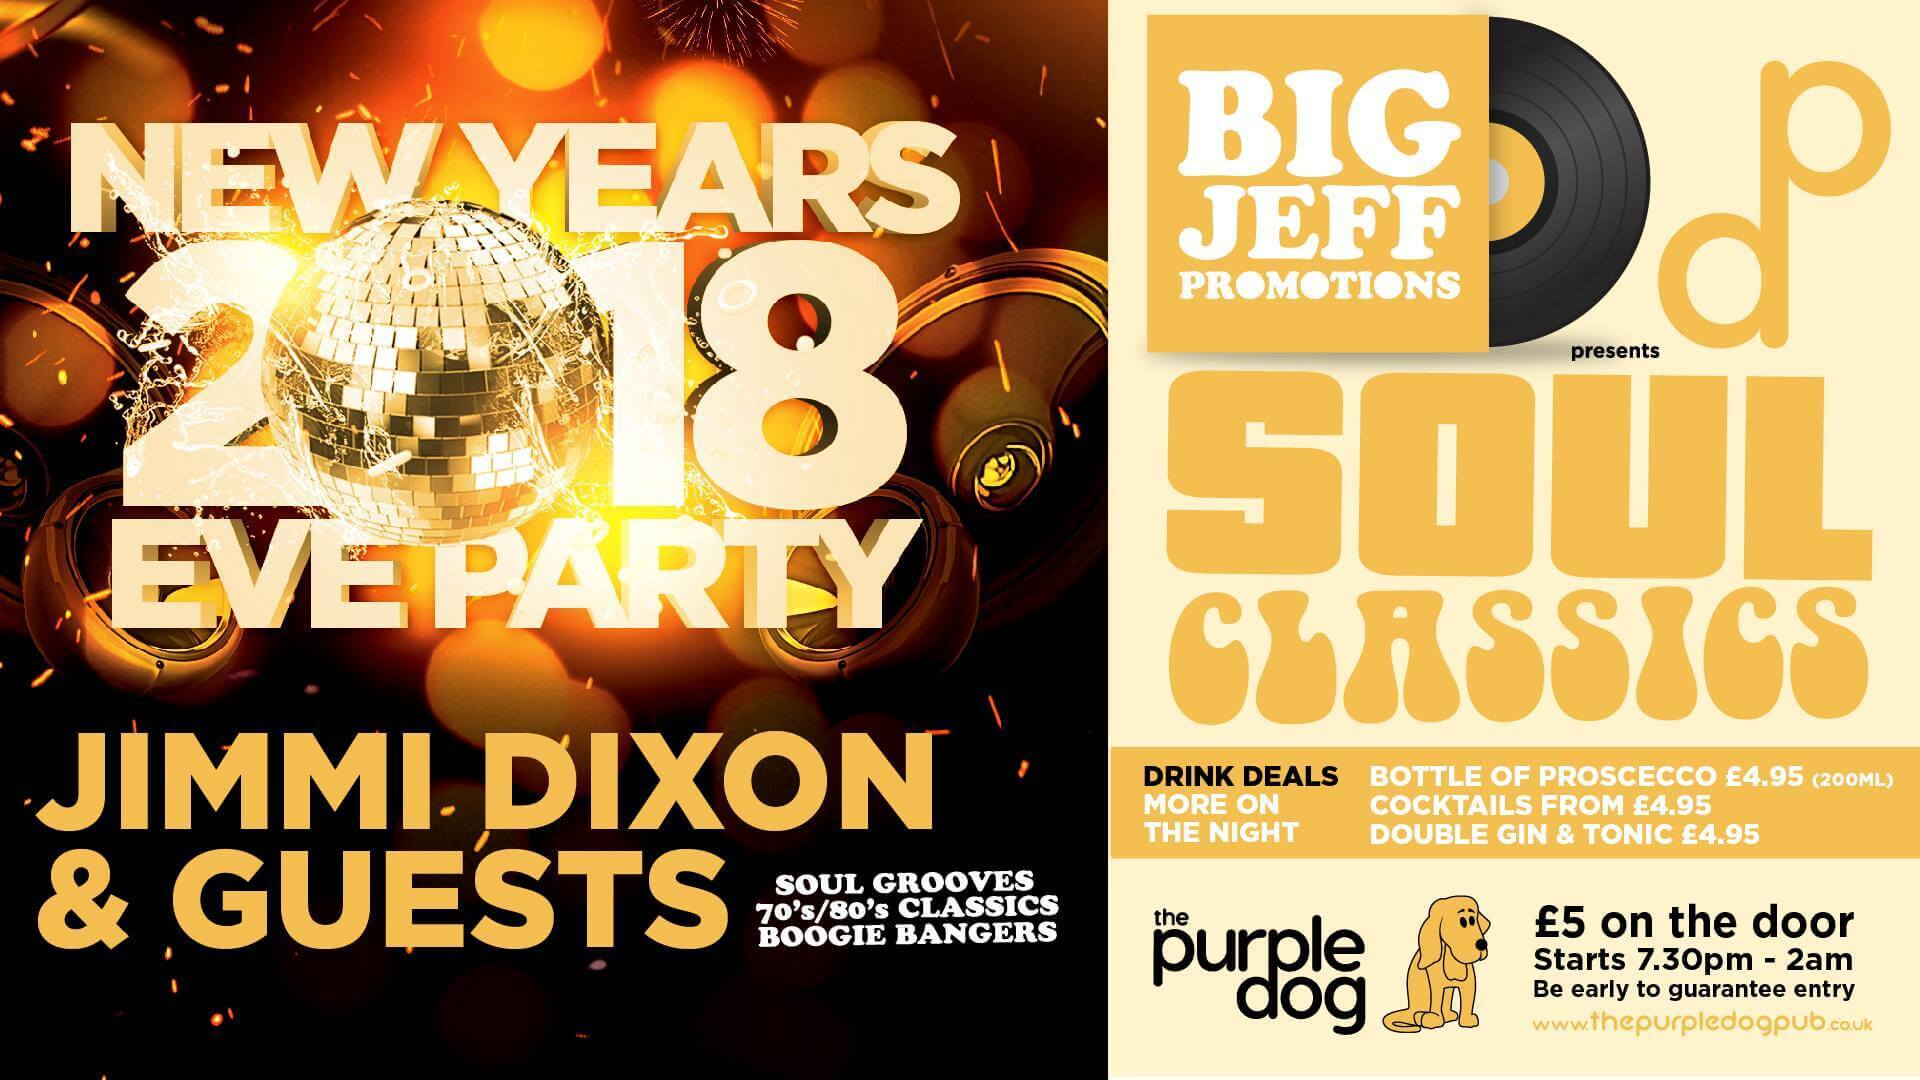 The Purple Dog Pub - Big Jeff Promotions - NYE 2018